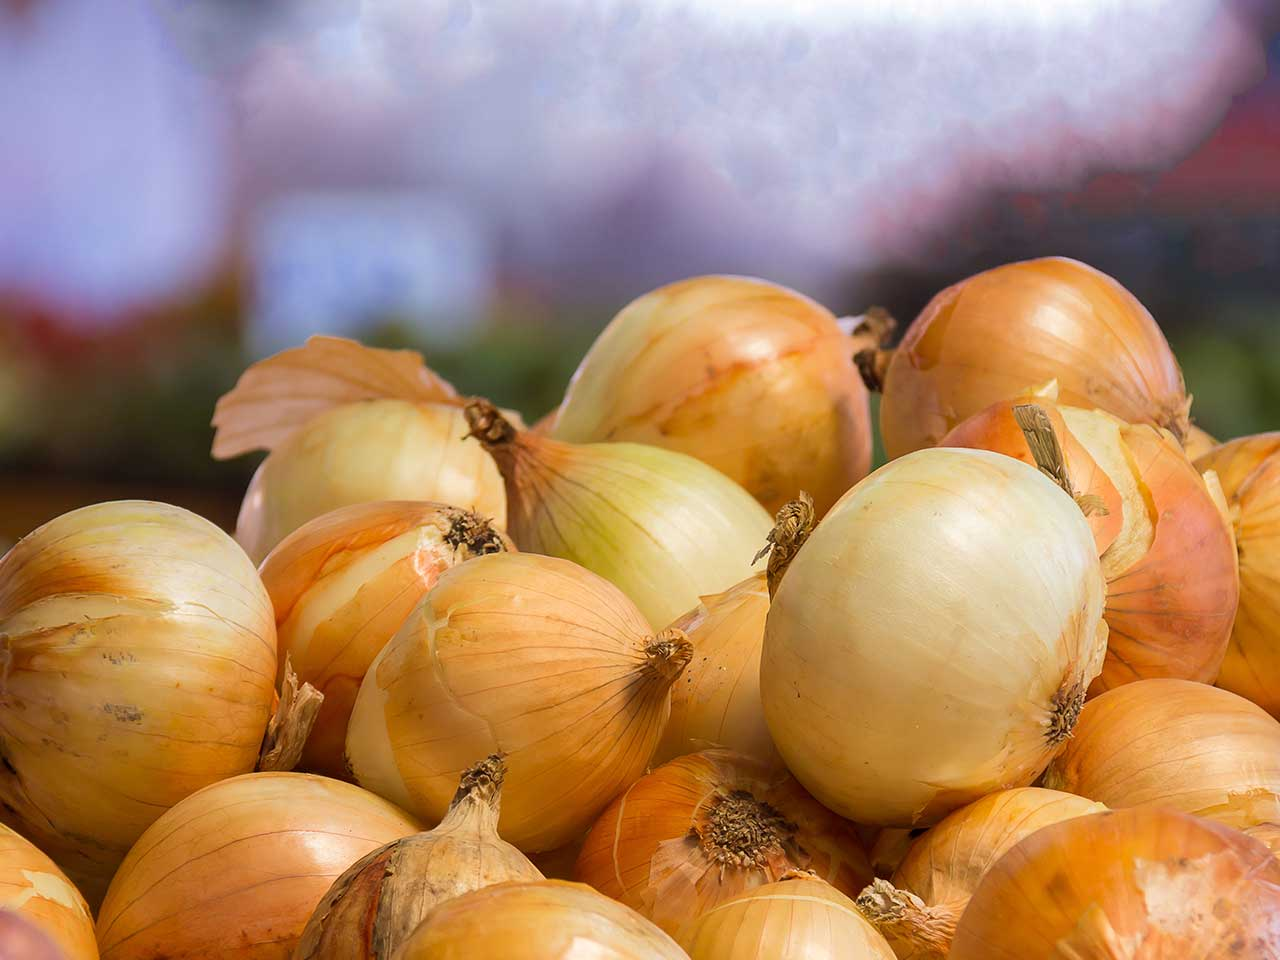 Onions on a market stall